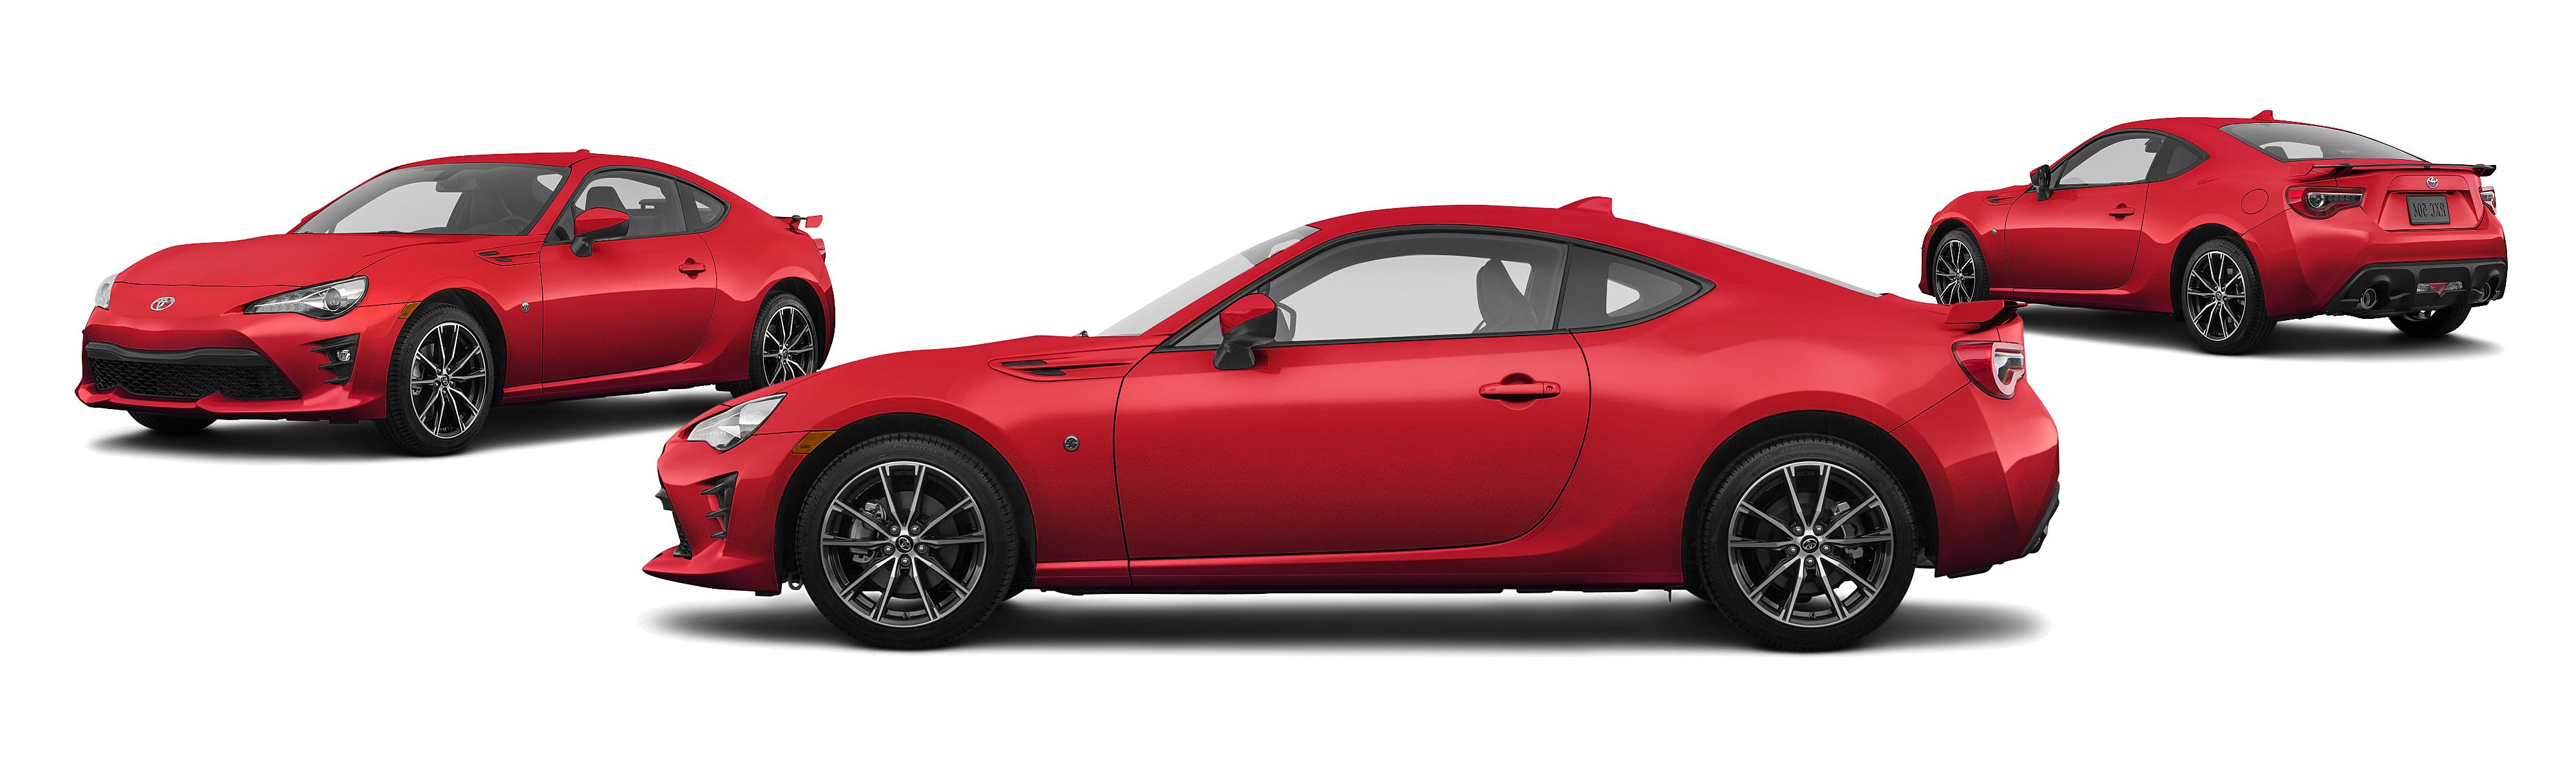 2019 Toyota 86 Gt 2dr Coupe 6m Research Groovecar